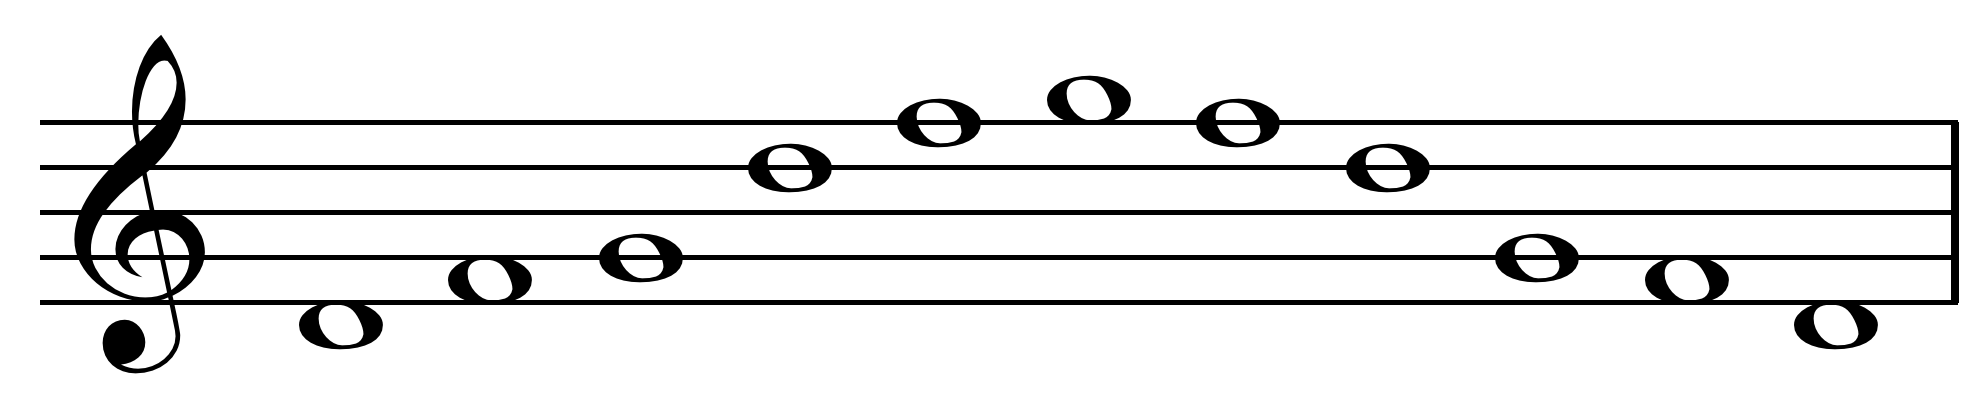 Maqam phase sequence example